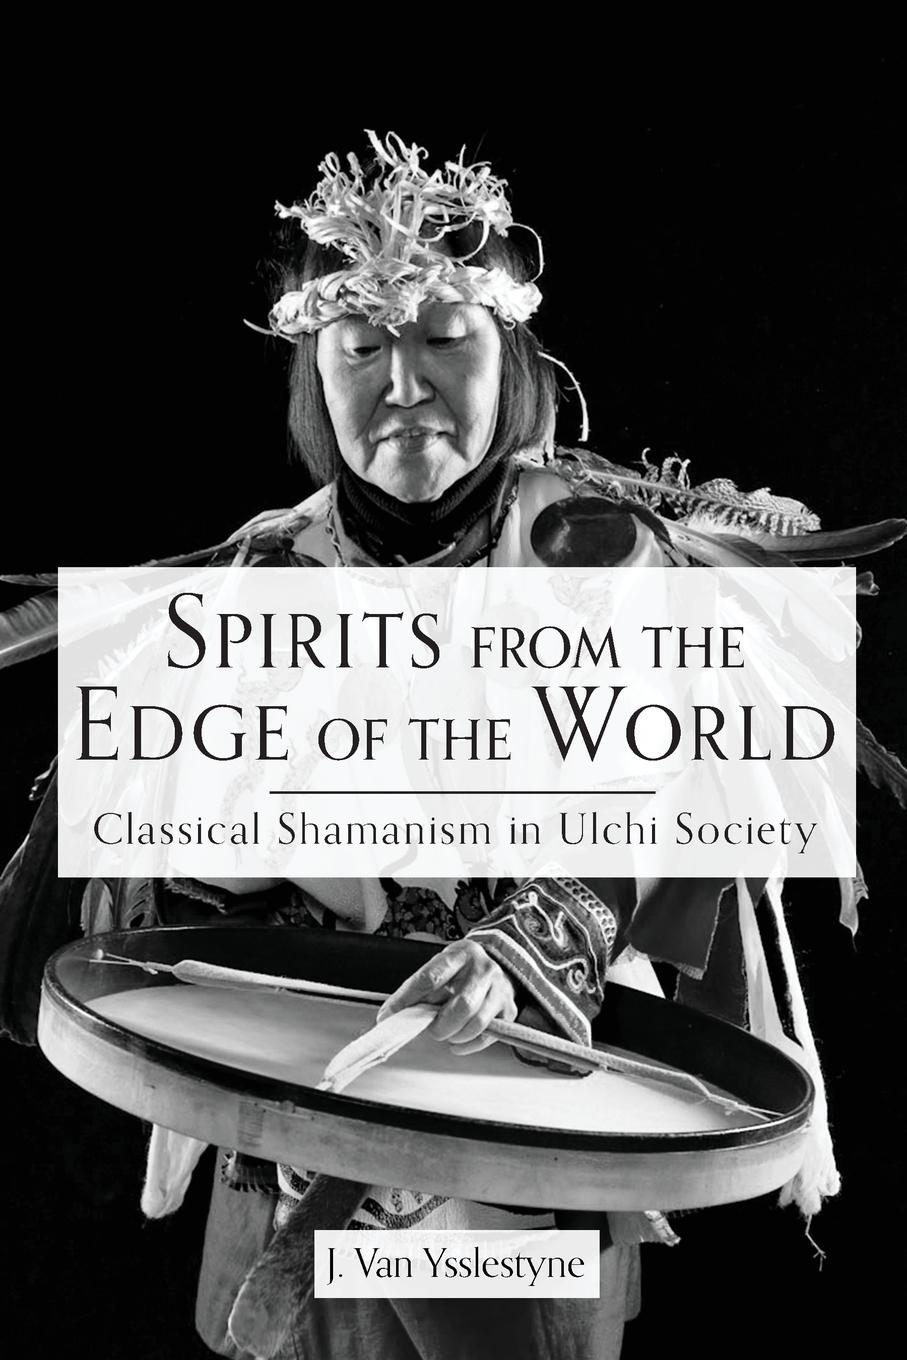 J Van Ysslestyne Spirits from the Edge of the World. Classical shamanism in Ulchi Society michael johnson spirits of ethasia the silent stag talamh